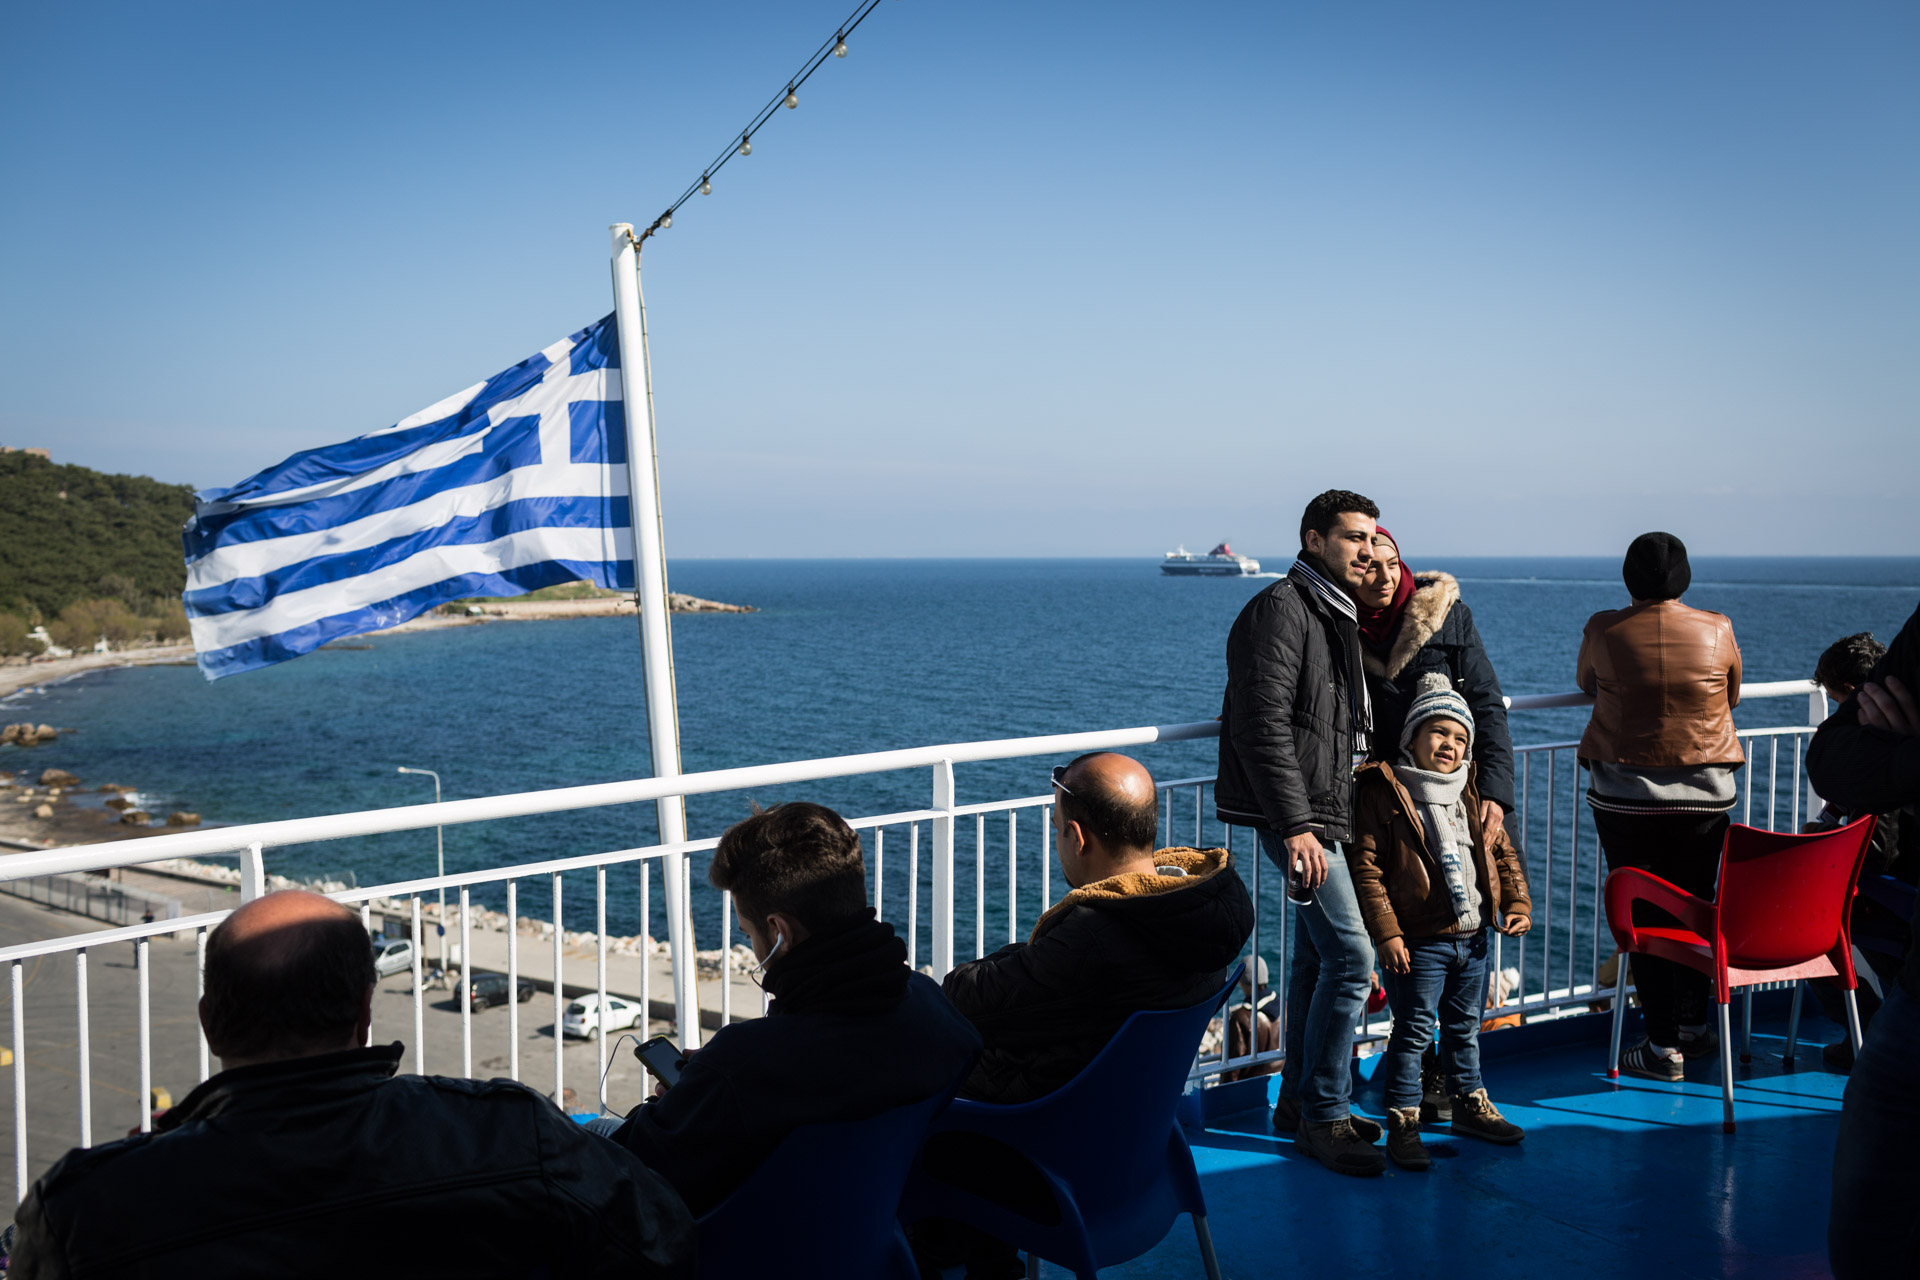 Like for many other refugees on their way to Western Europe, Greece is their first glimpse into the European Union. Here, a couple gets their picture taken on the ferry from Lesbos to Athens.